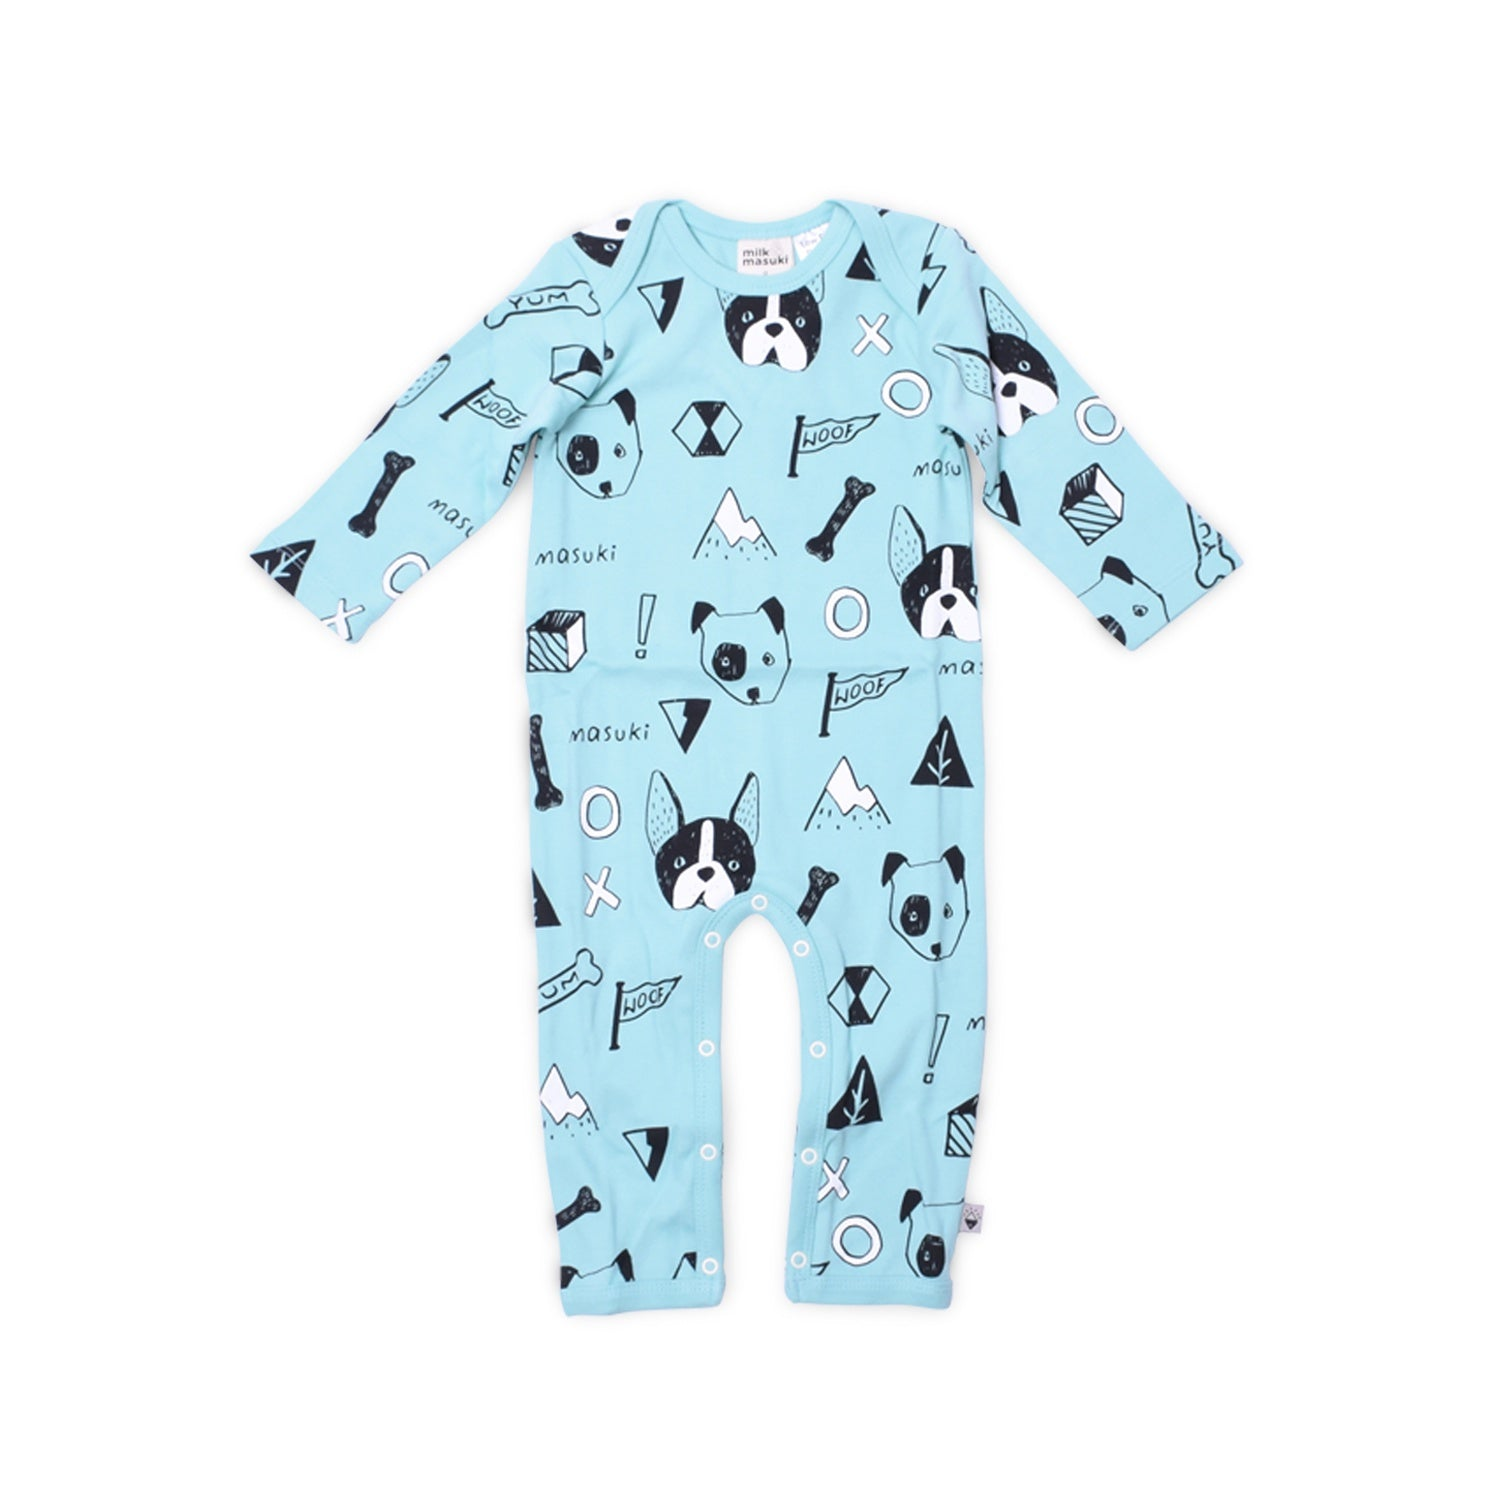 Milk & Masuki - Full Body Button All - Woof - Meterage / Size O / 6 - 12 Months